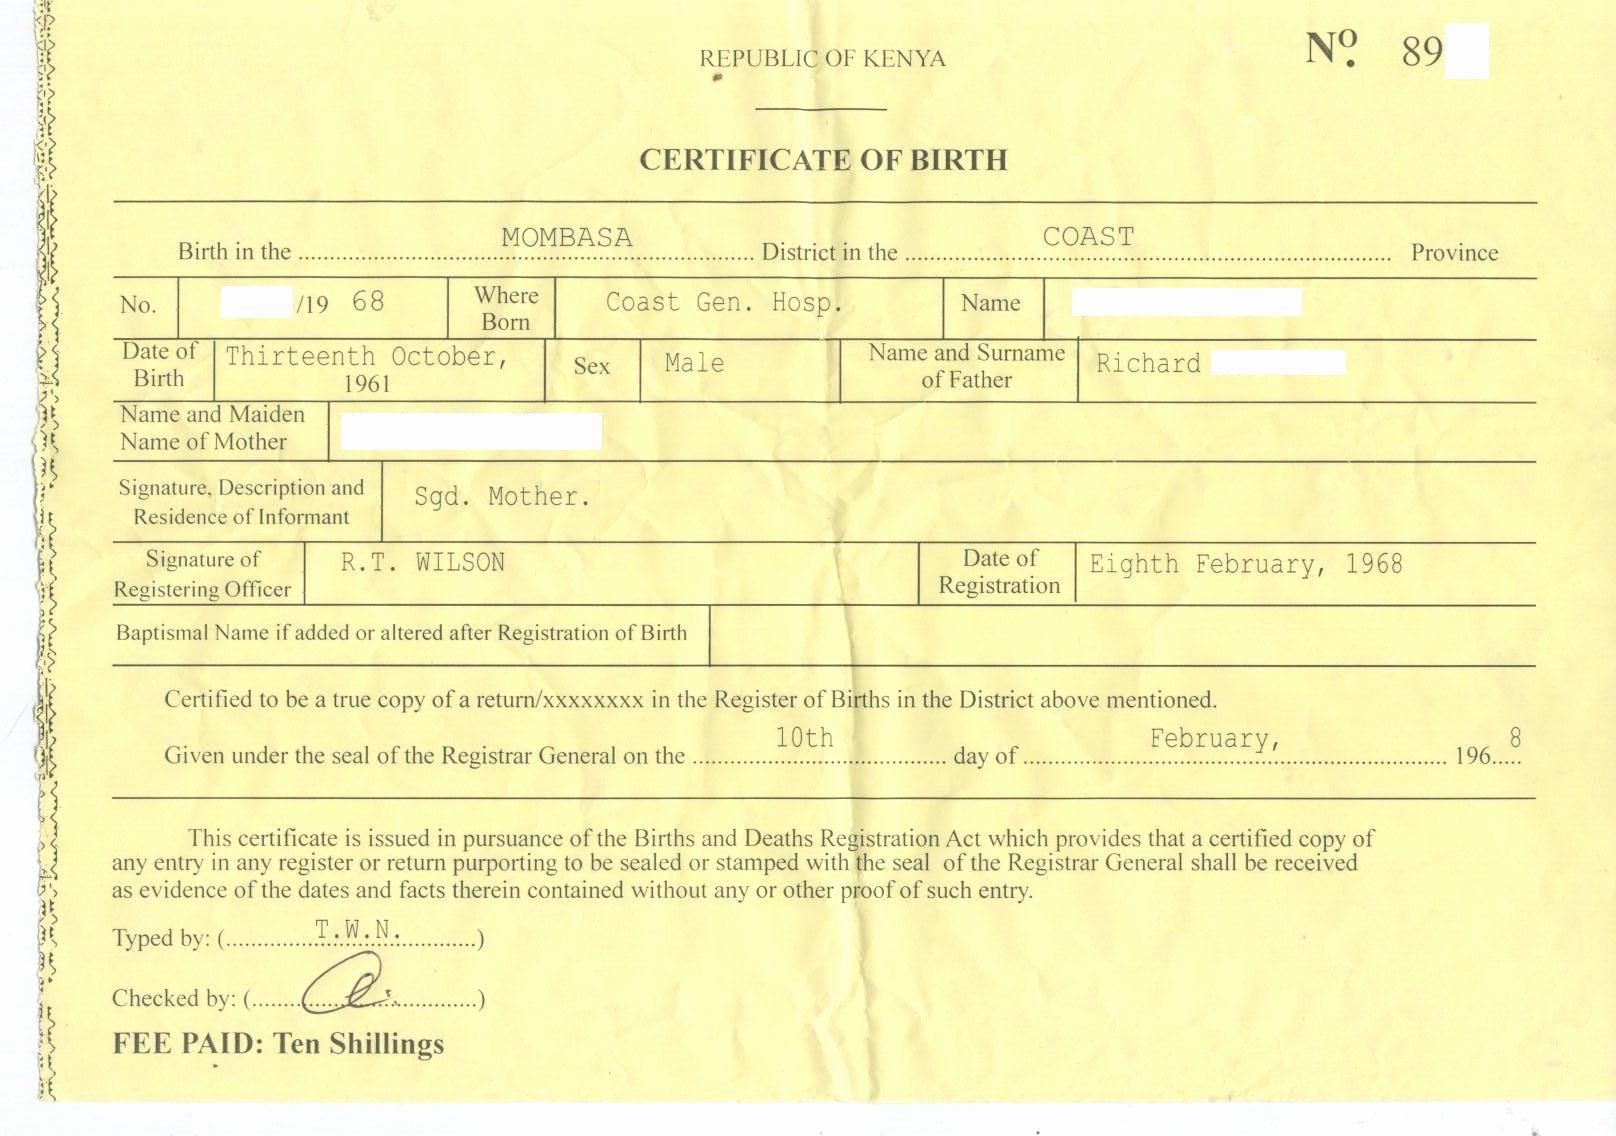 Fake Birth Certificate Template Luxury Dr Conspiracy's First Fake Kenyan Birth Certificate